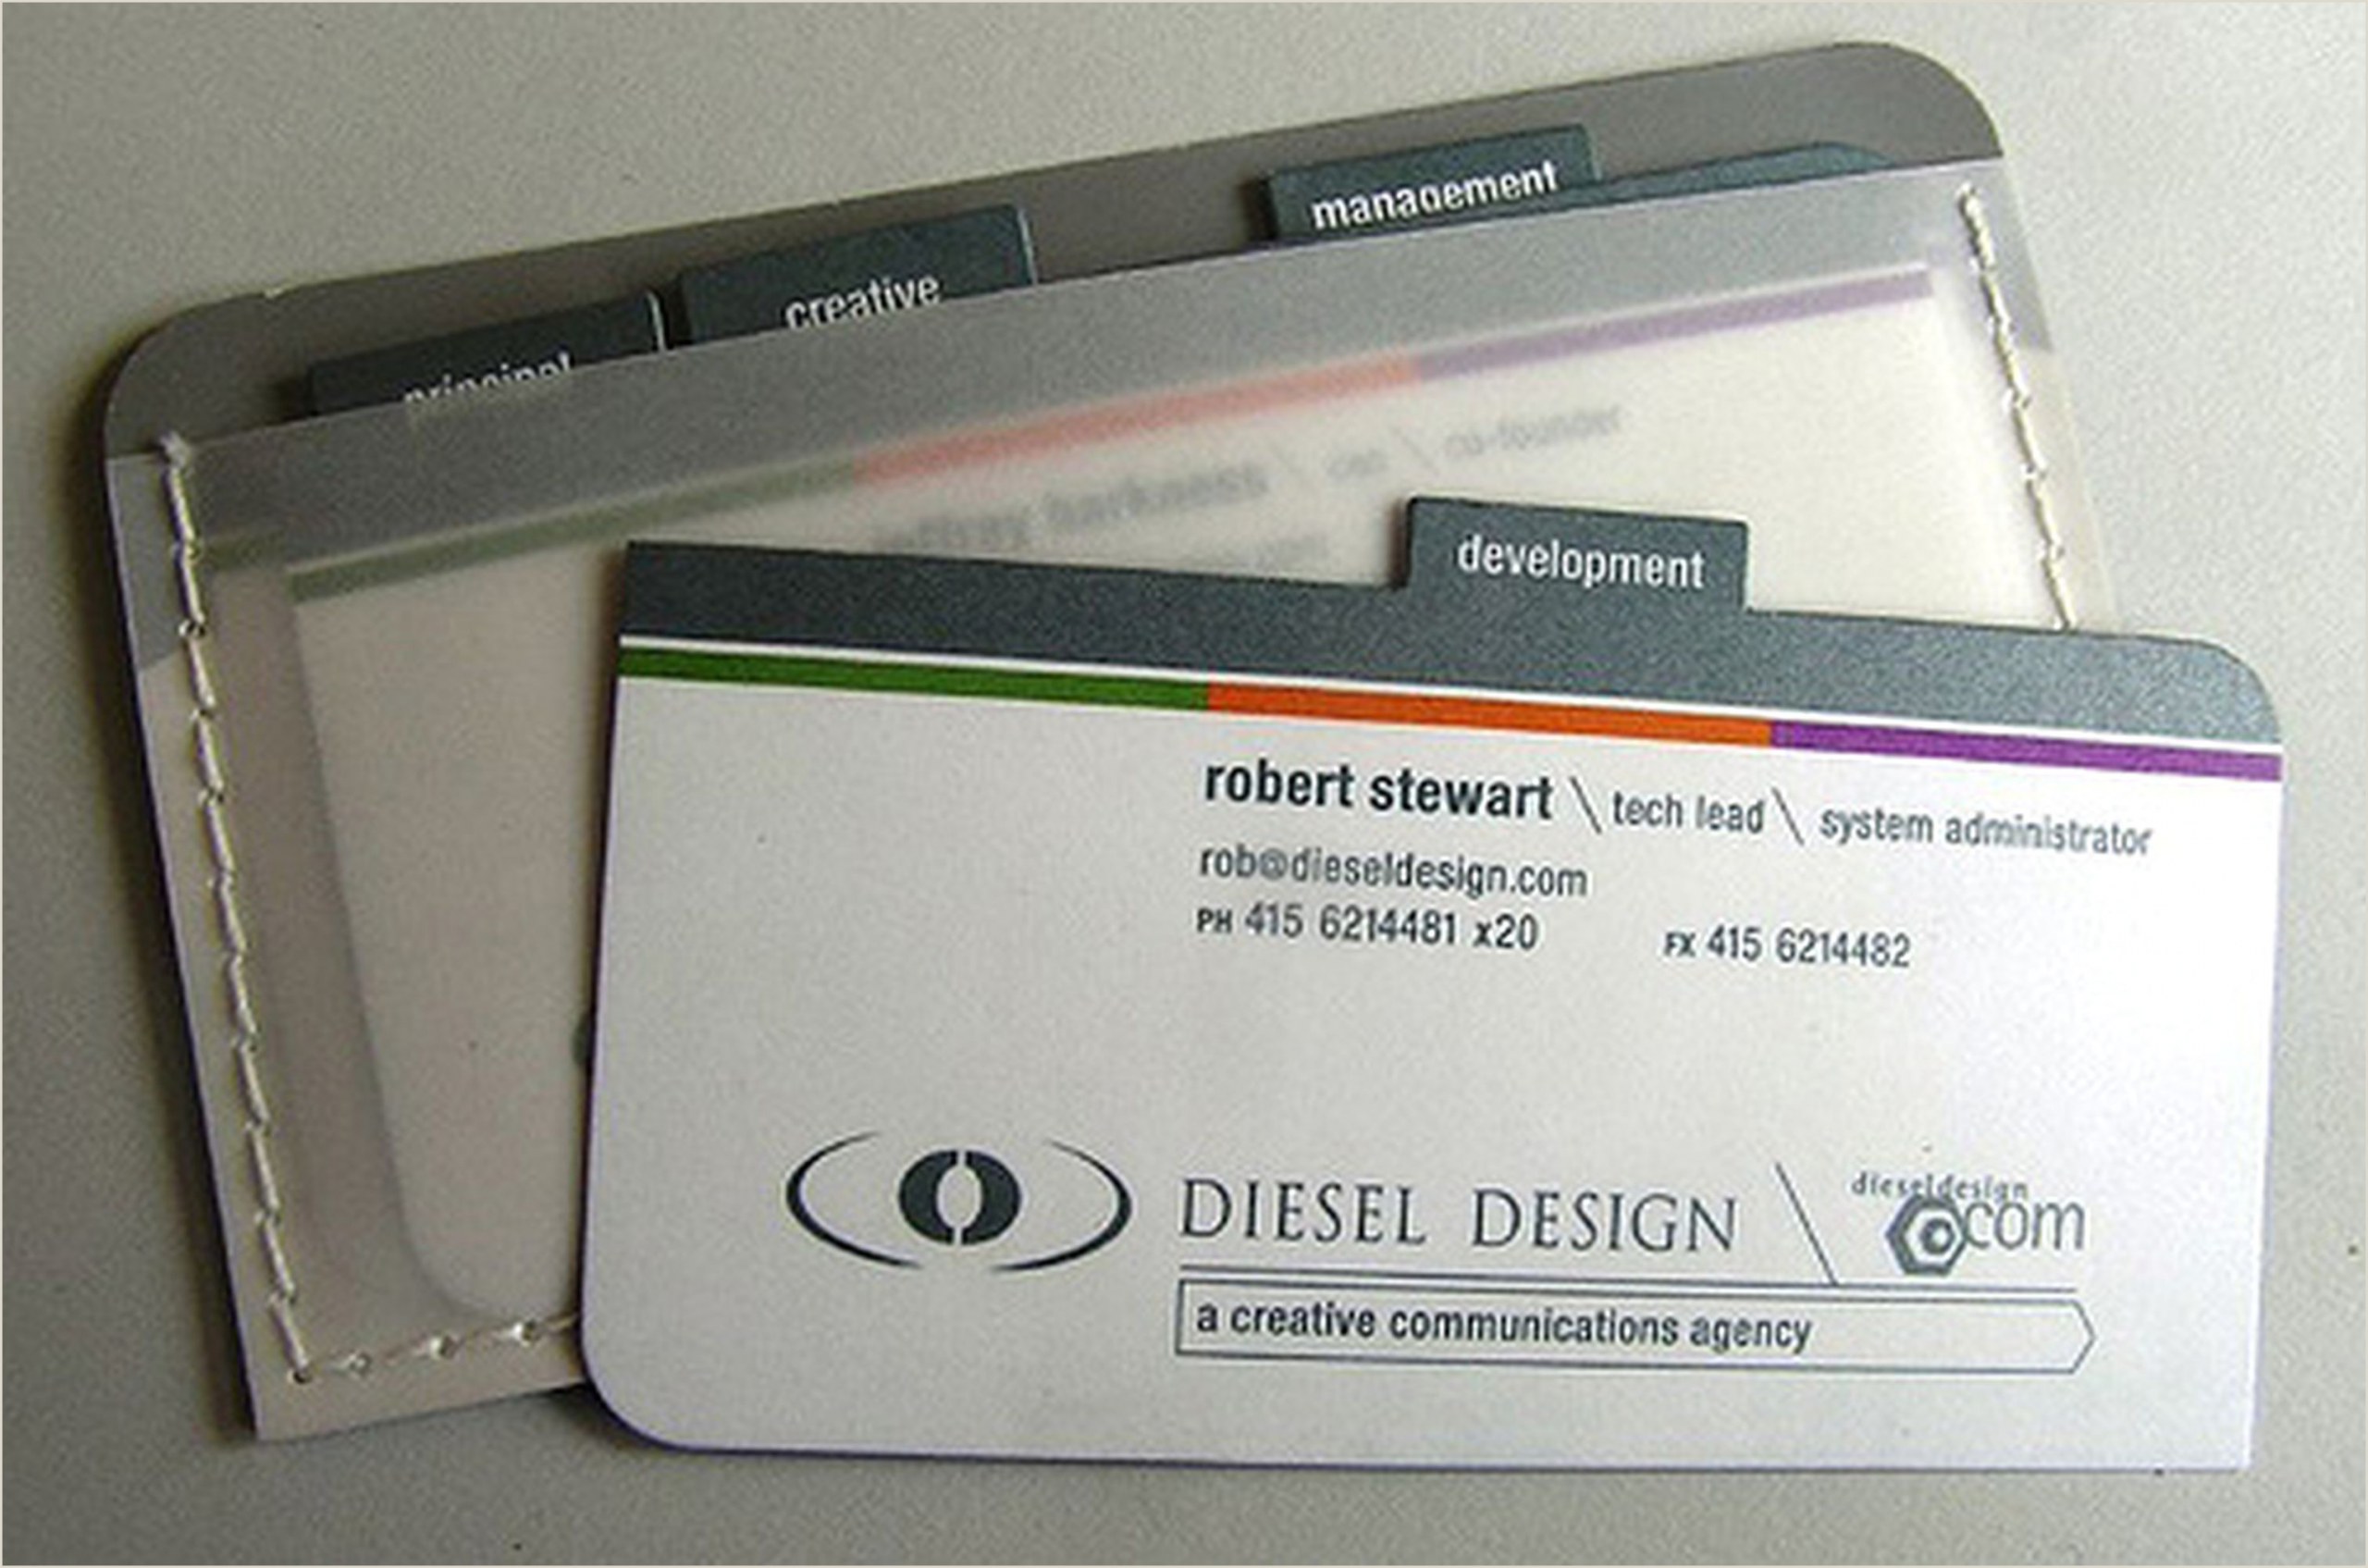 Unusual Business Cards 30 Unconventional Business Cards